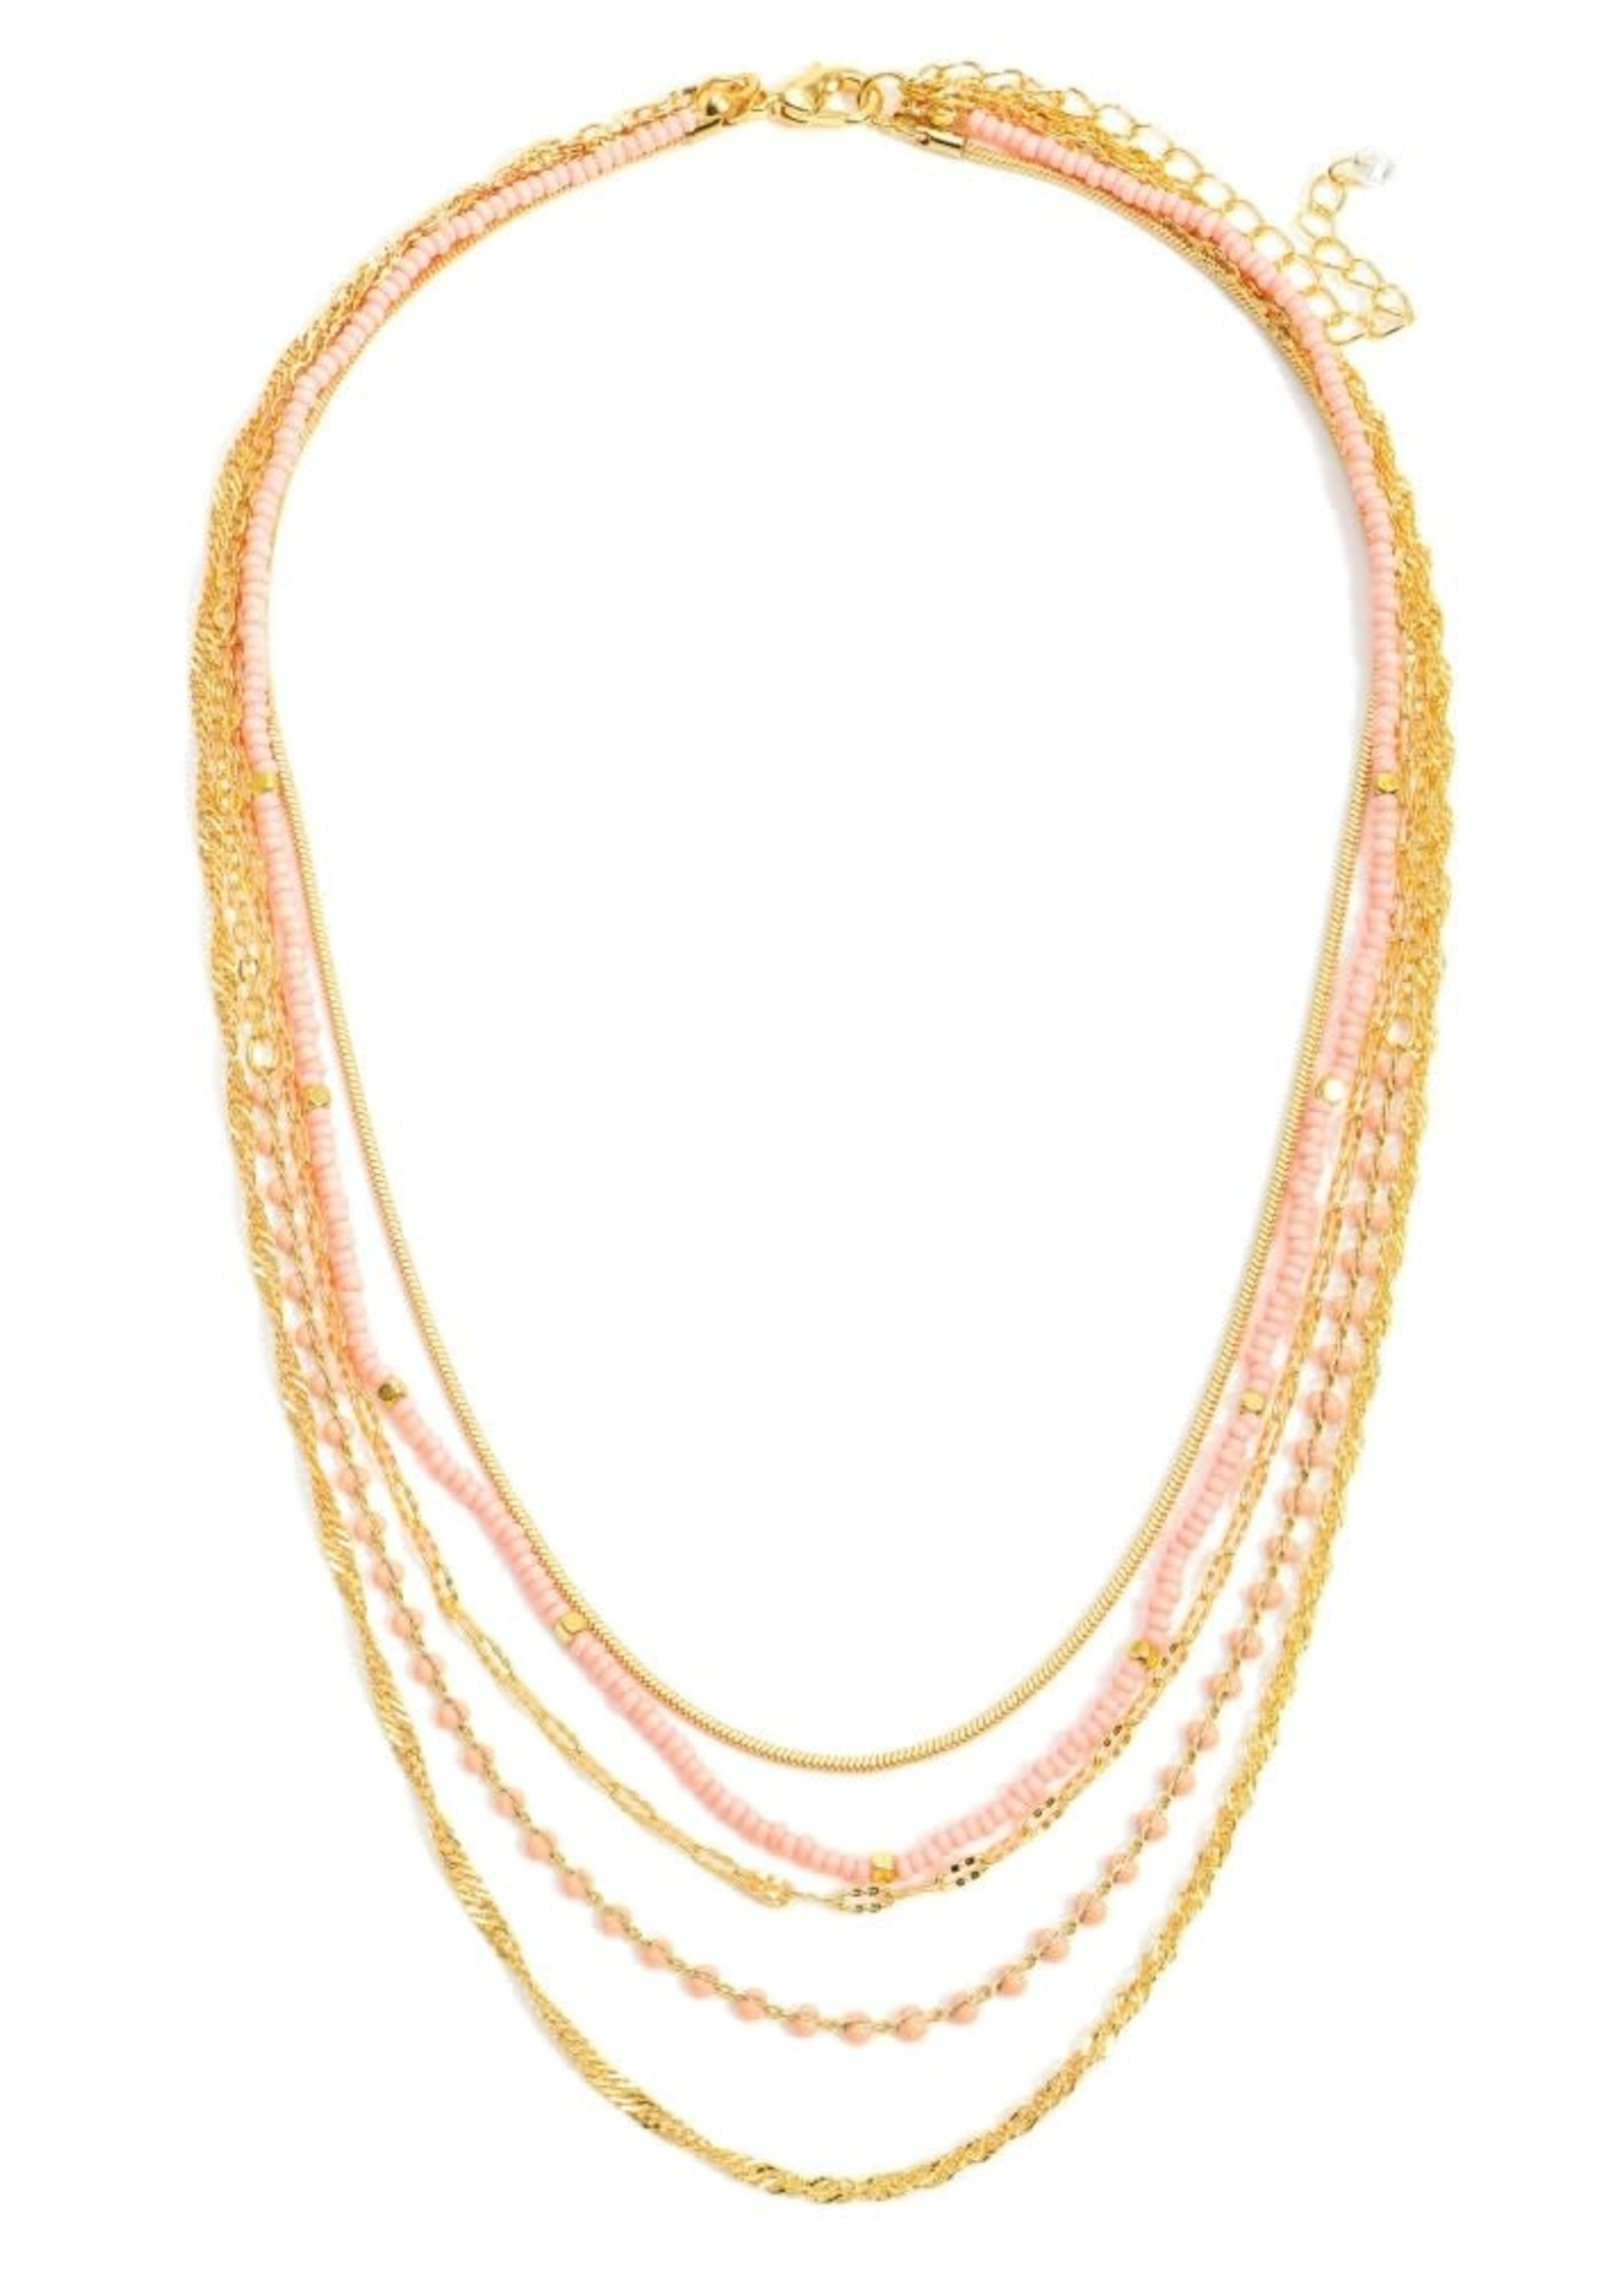 Gold Beaded Layered Necklace